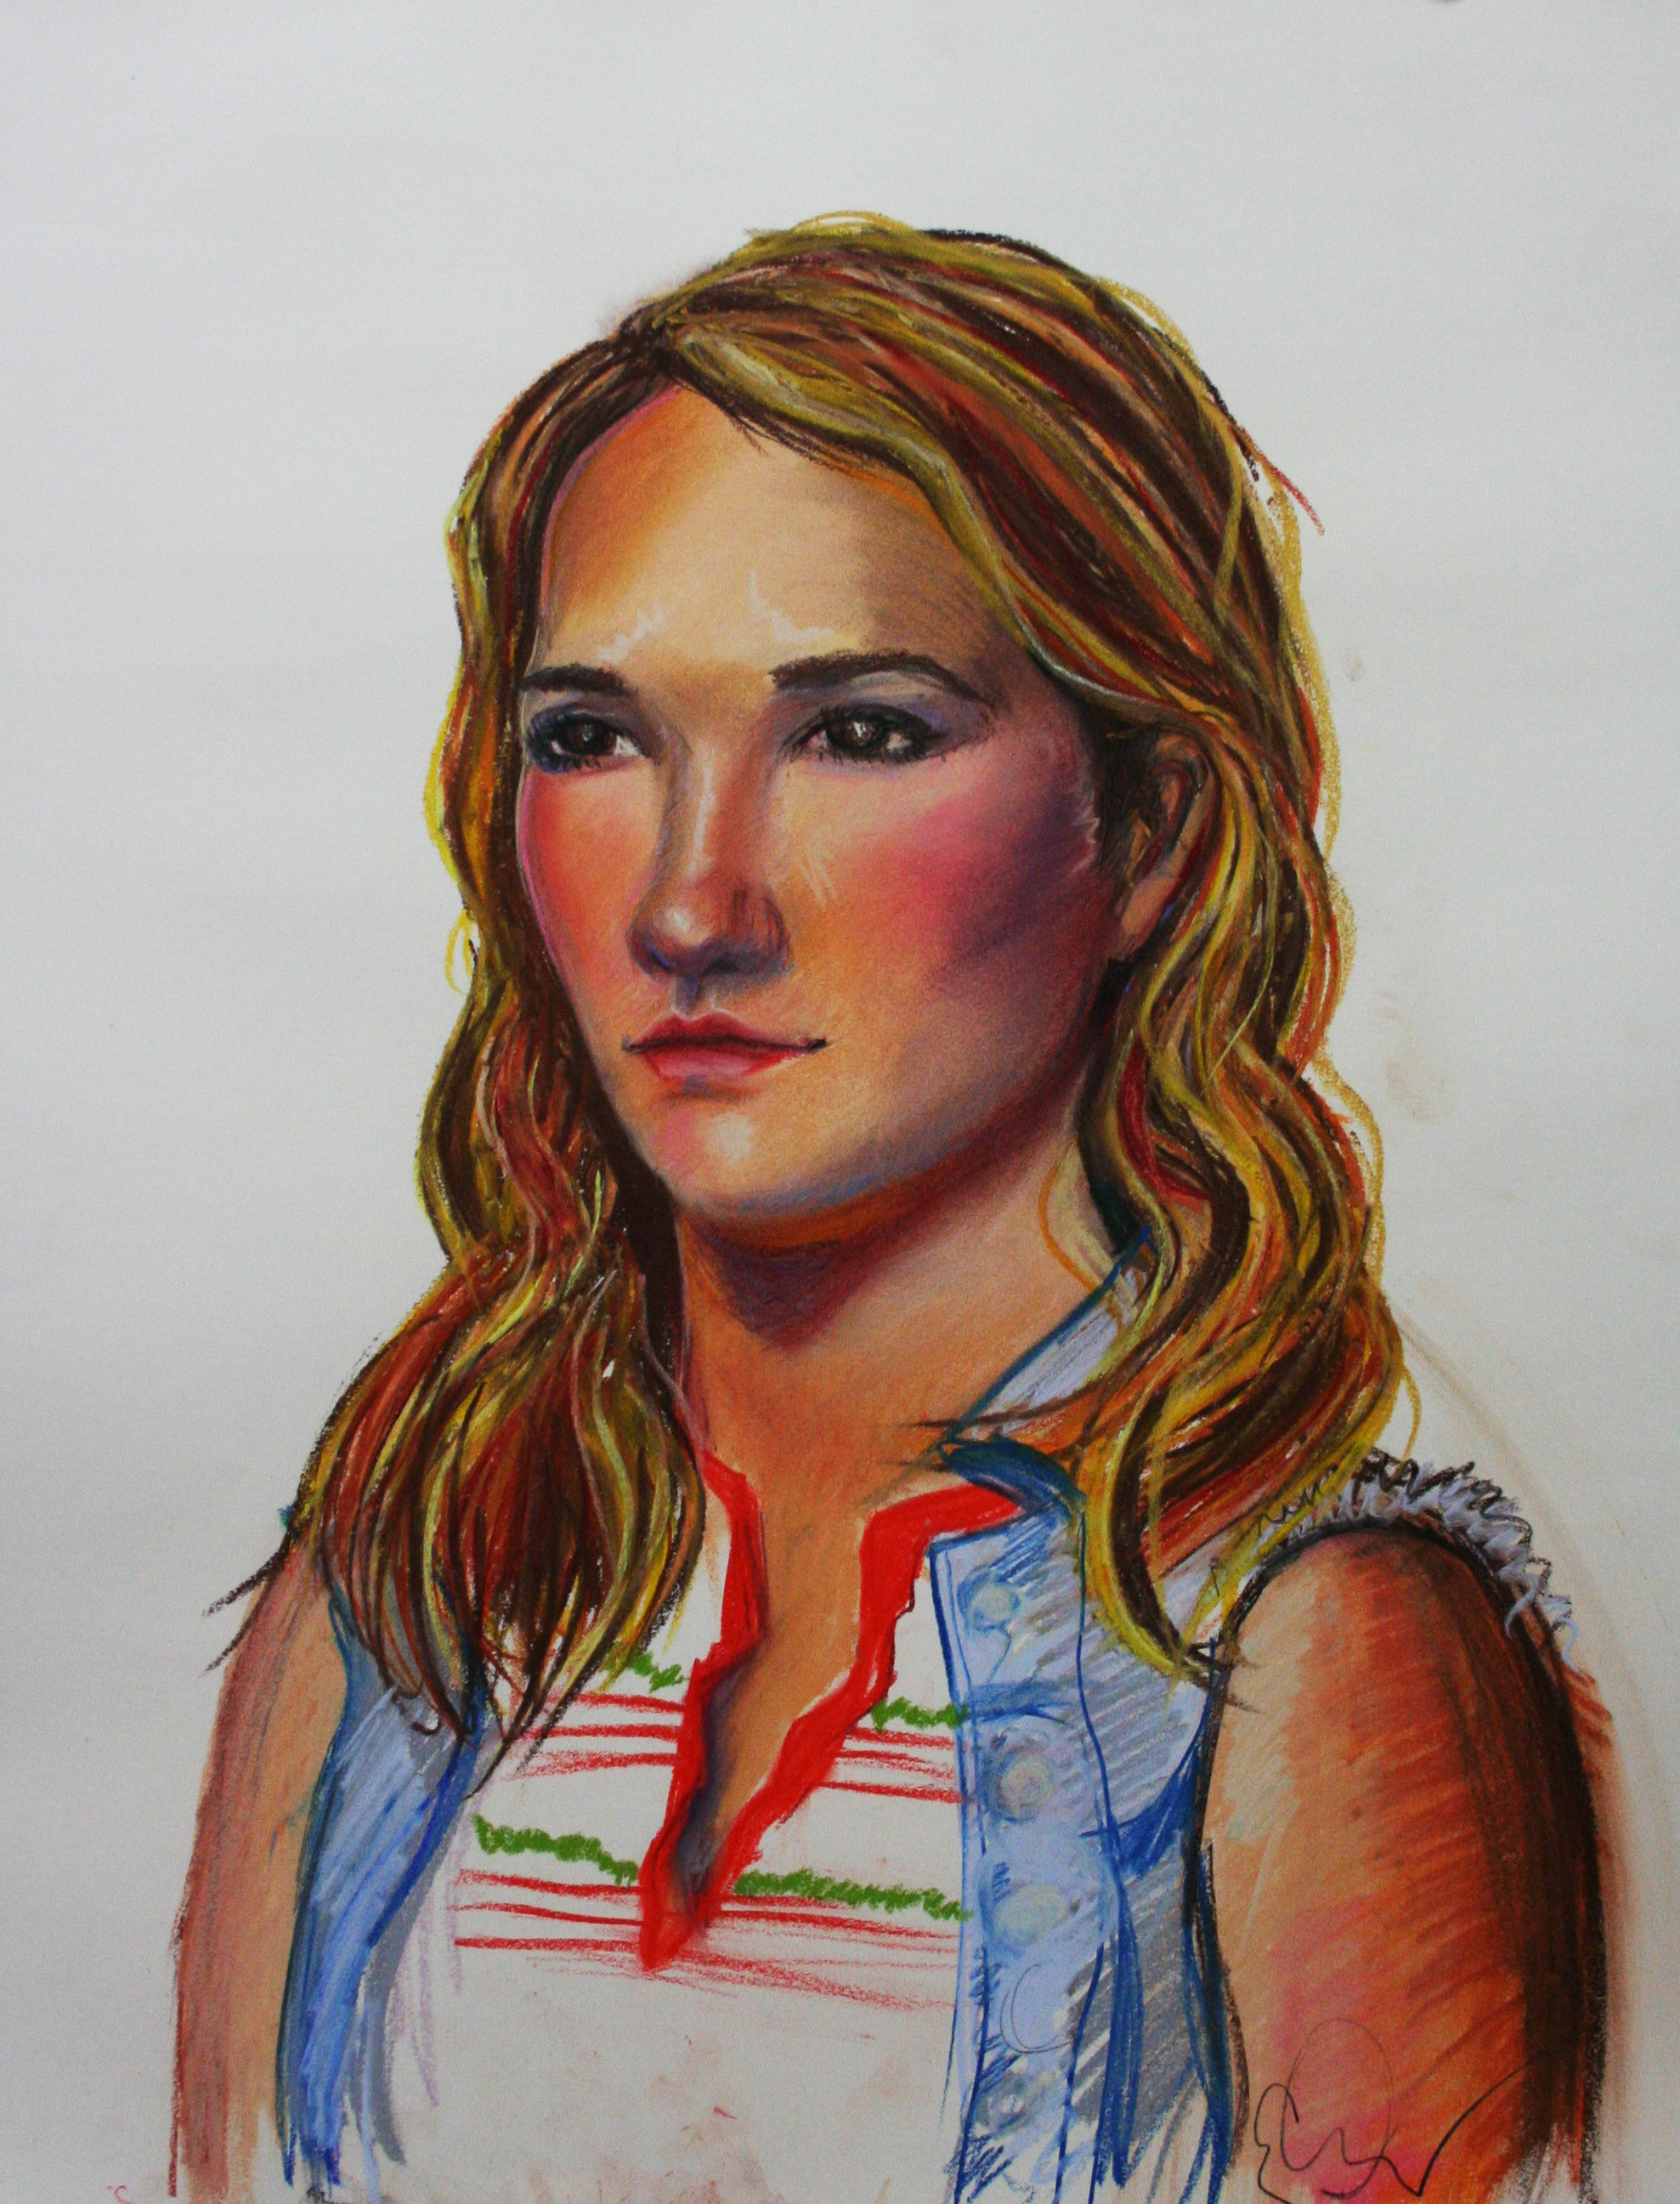 Casandra Dracup did this 3-hour pastel drawing.